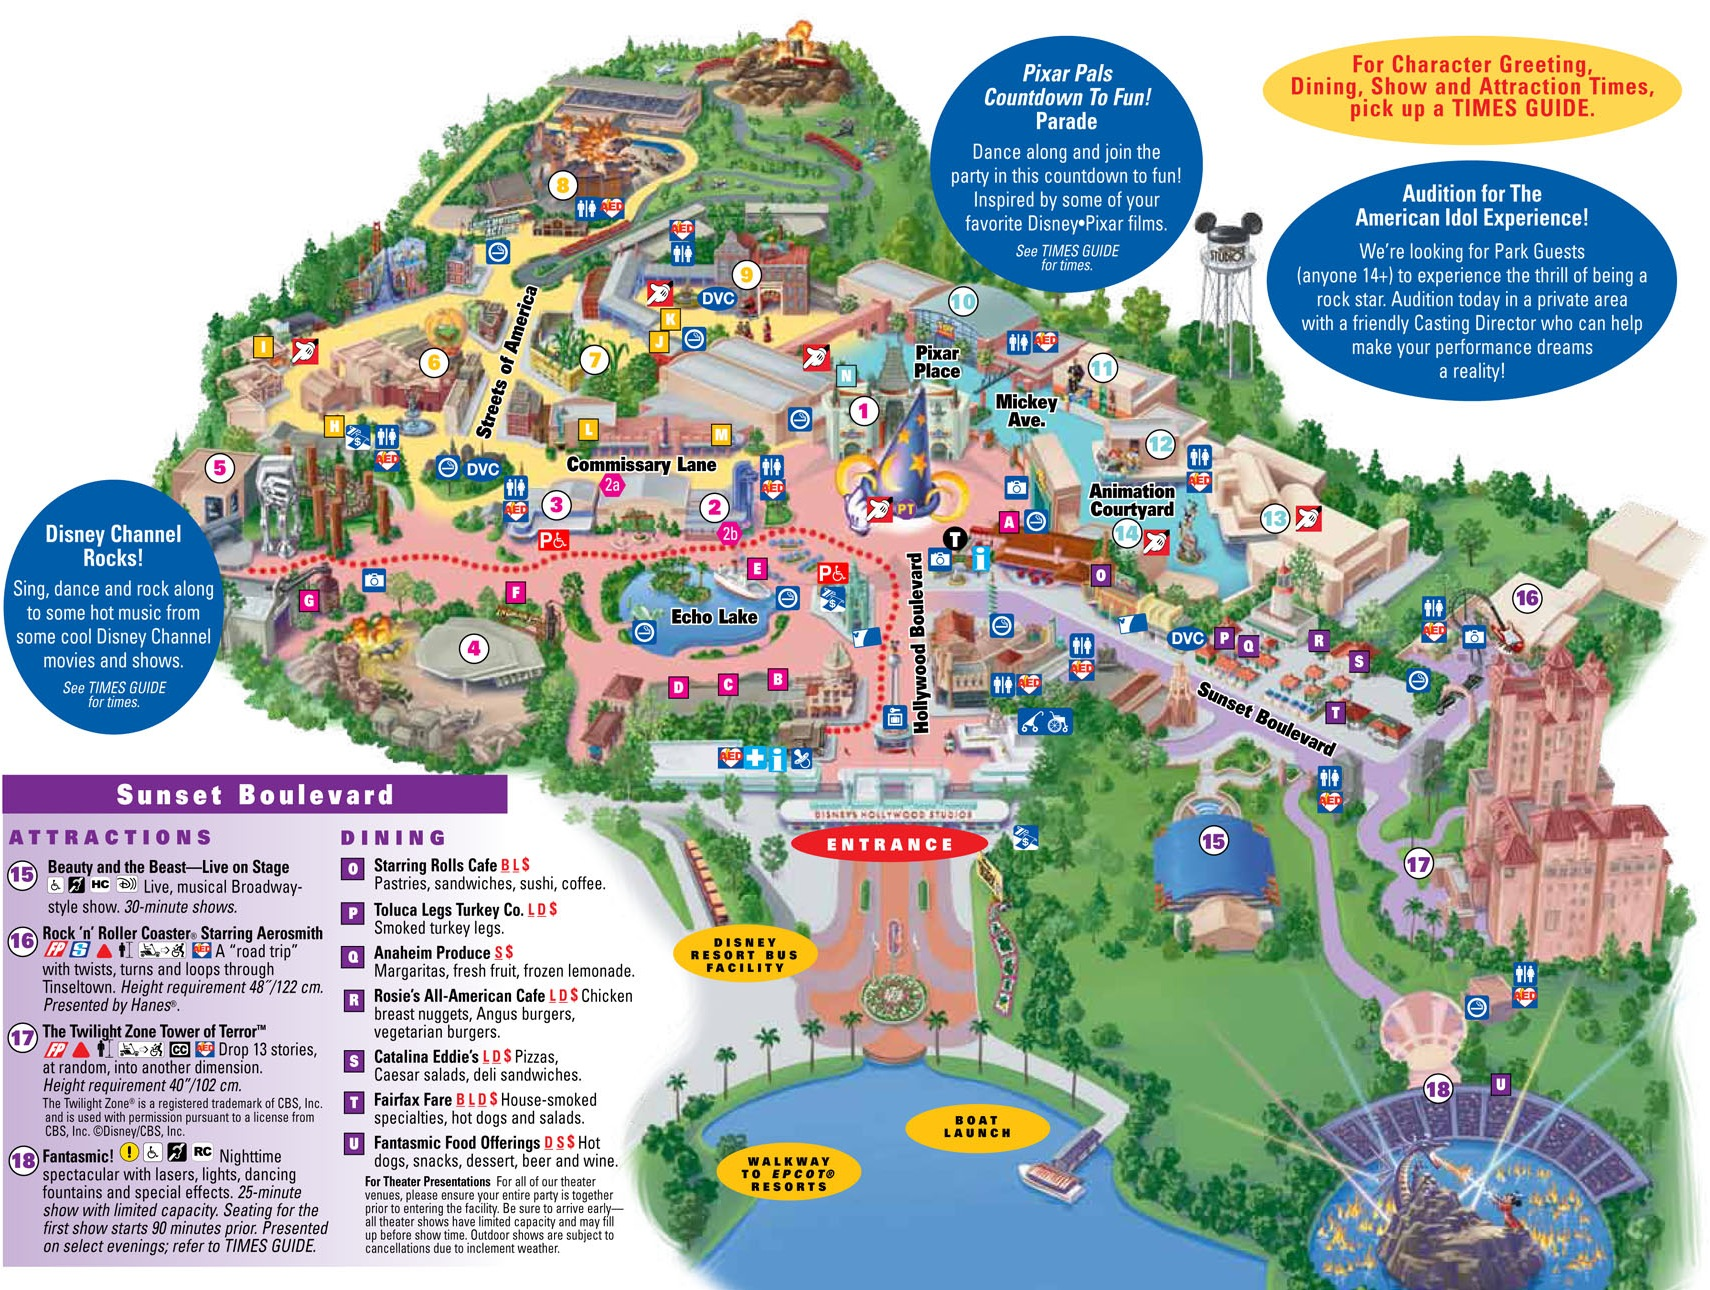 Disney's New Maps - A Closer Look - TouringPlans.com Blog on